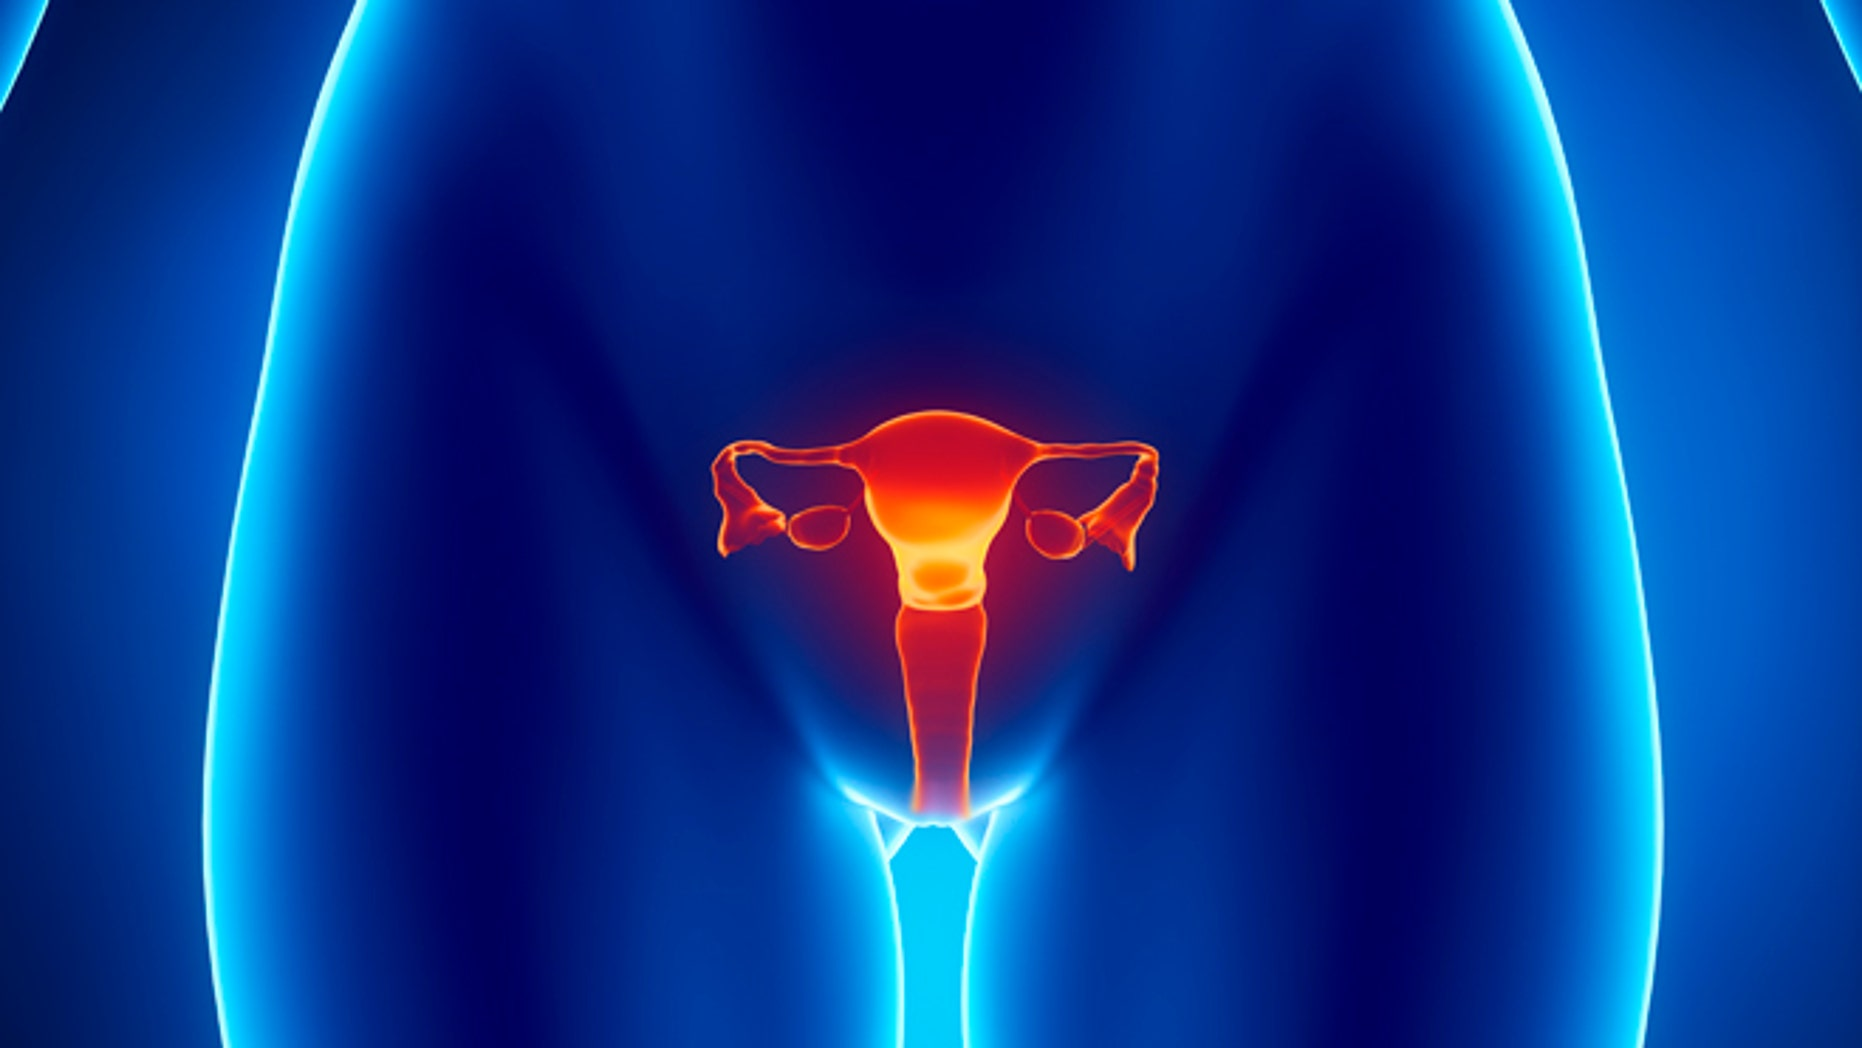 12 facts you should know about ovarian cysts | Fox News